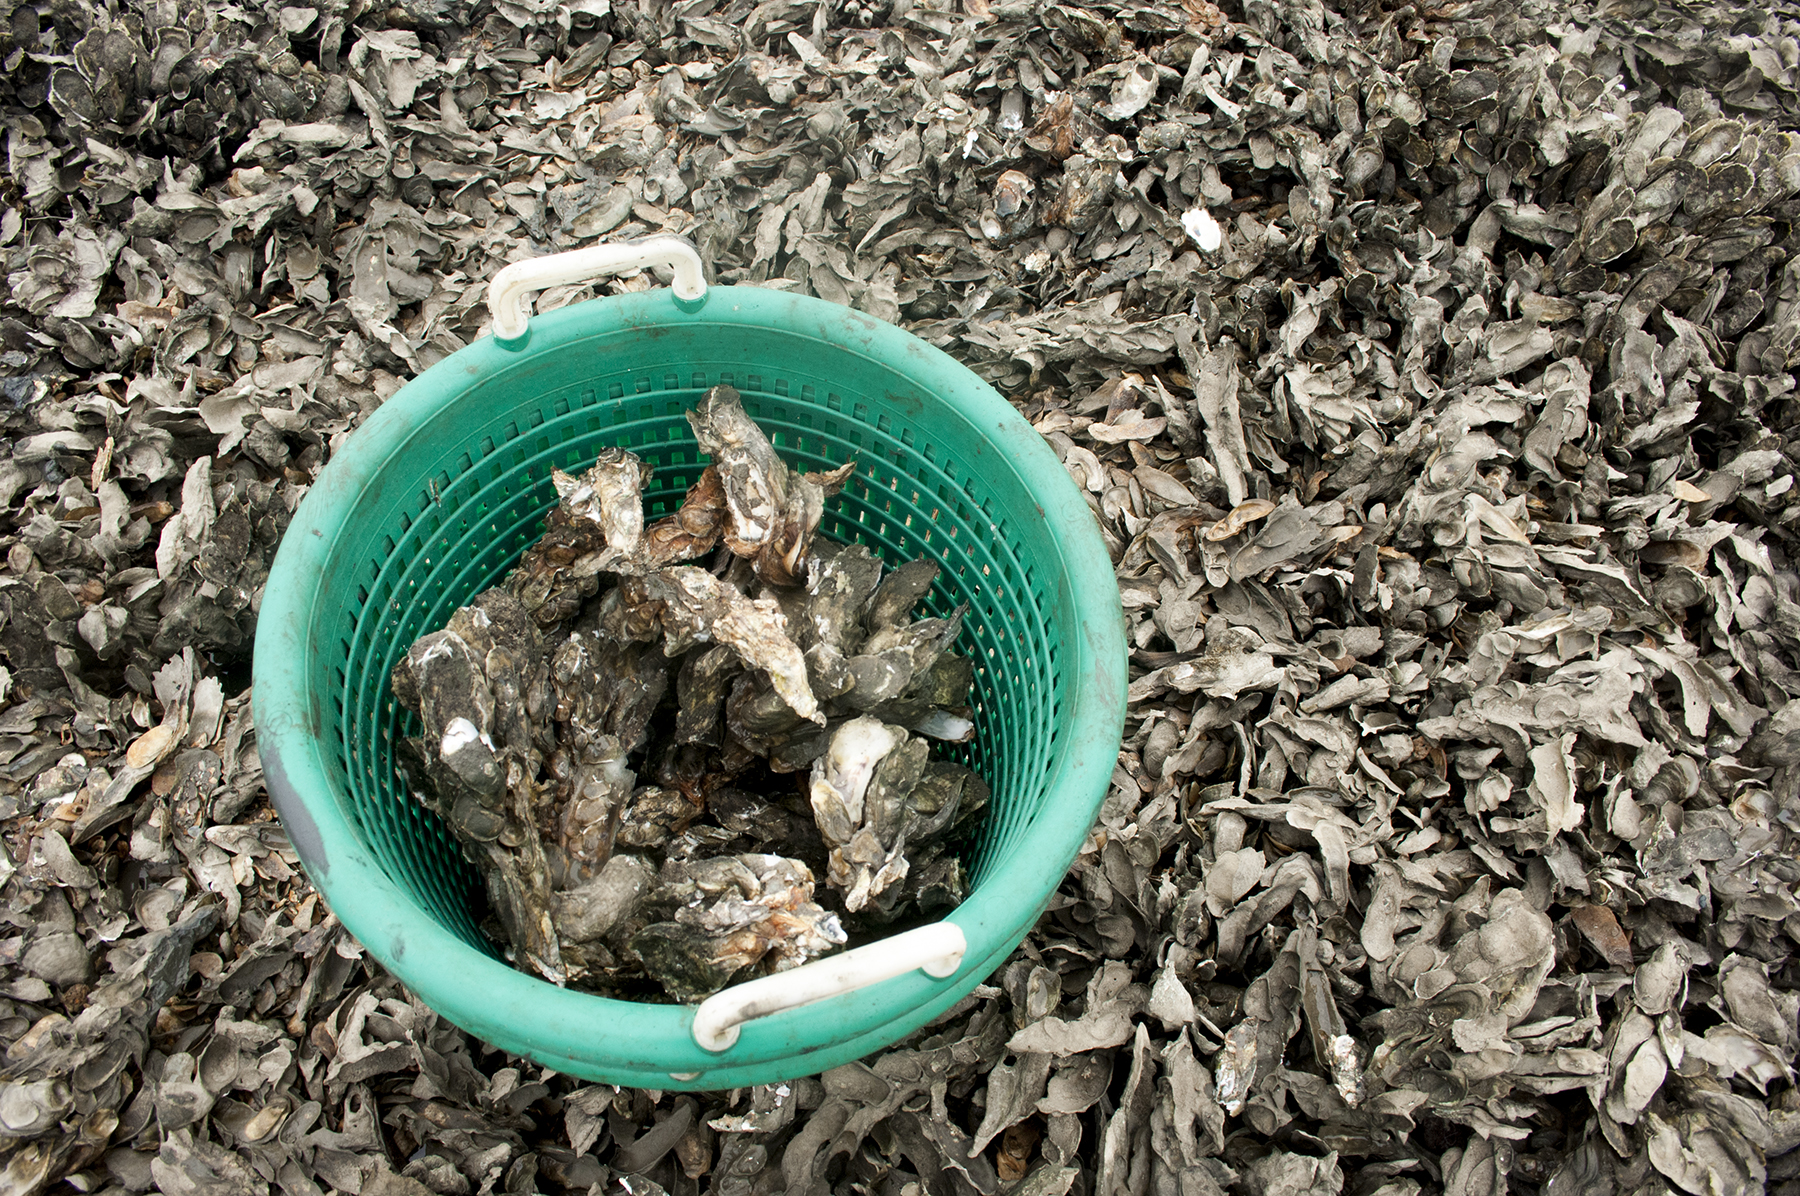 Commercial oyster harvest will close June 1